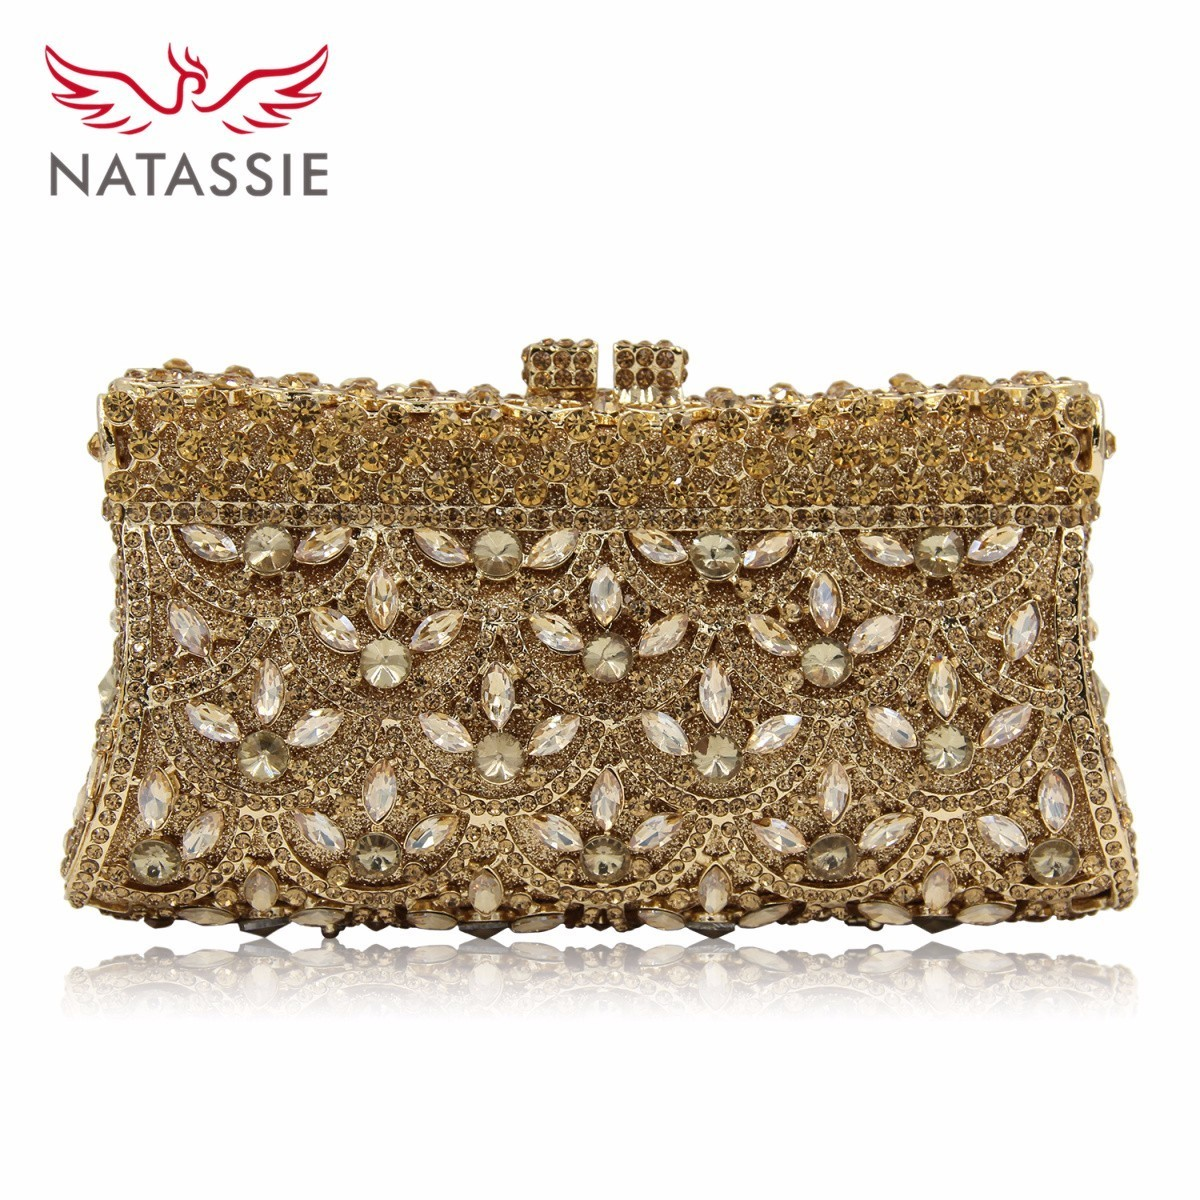 Natassie New Design Luxury Crystal Clutch Women Evening Bag Gold Red Ladies Wedding Banquet Party Purses Good Quality newest design evening bags ring diamond clutch chain shoulder bag purses wedding party banquet bag blue gold green red 88621 d